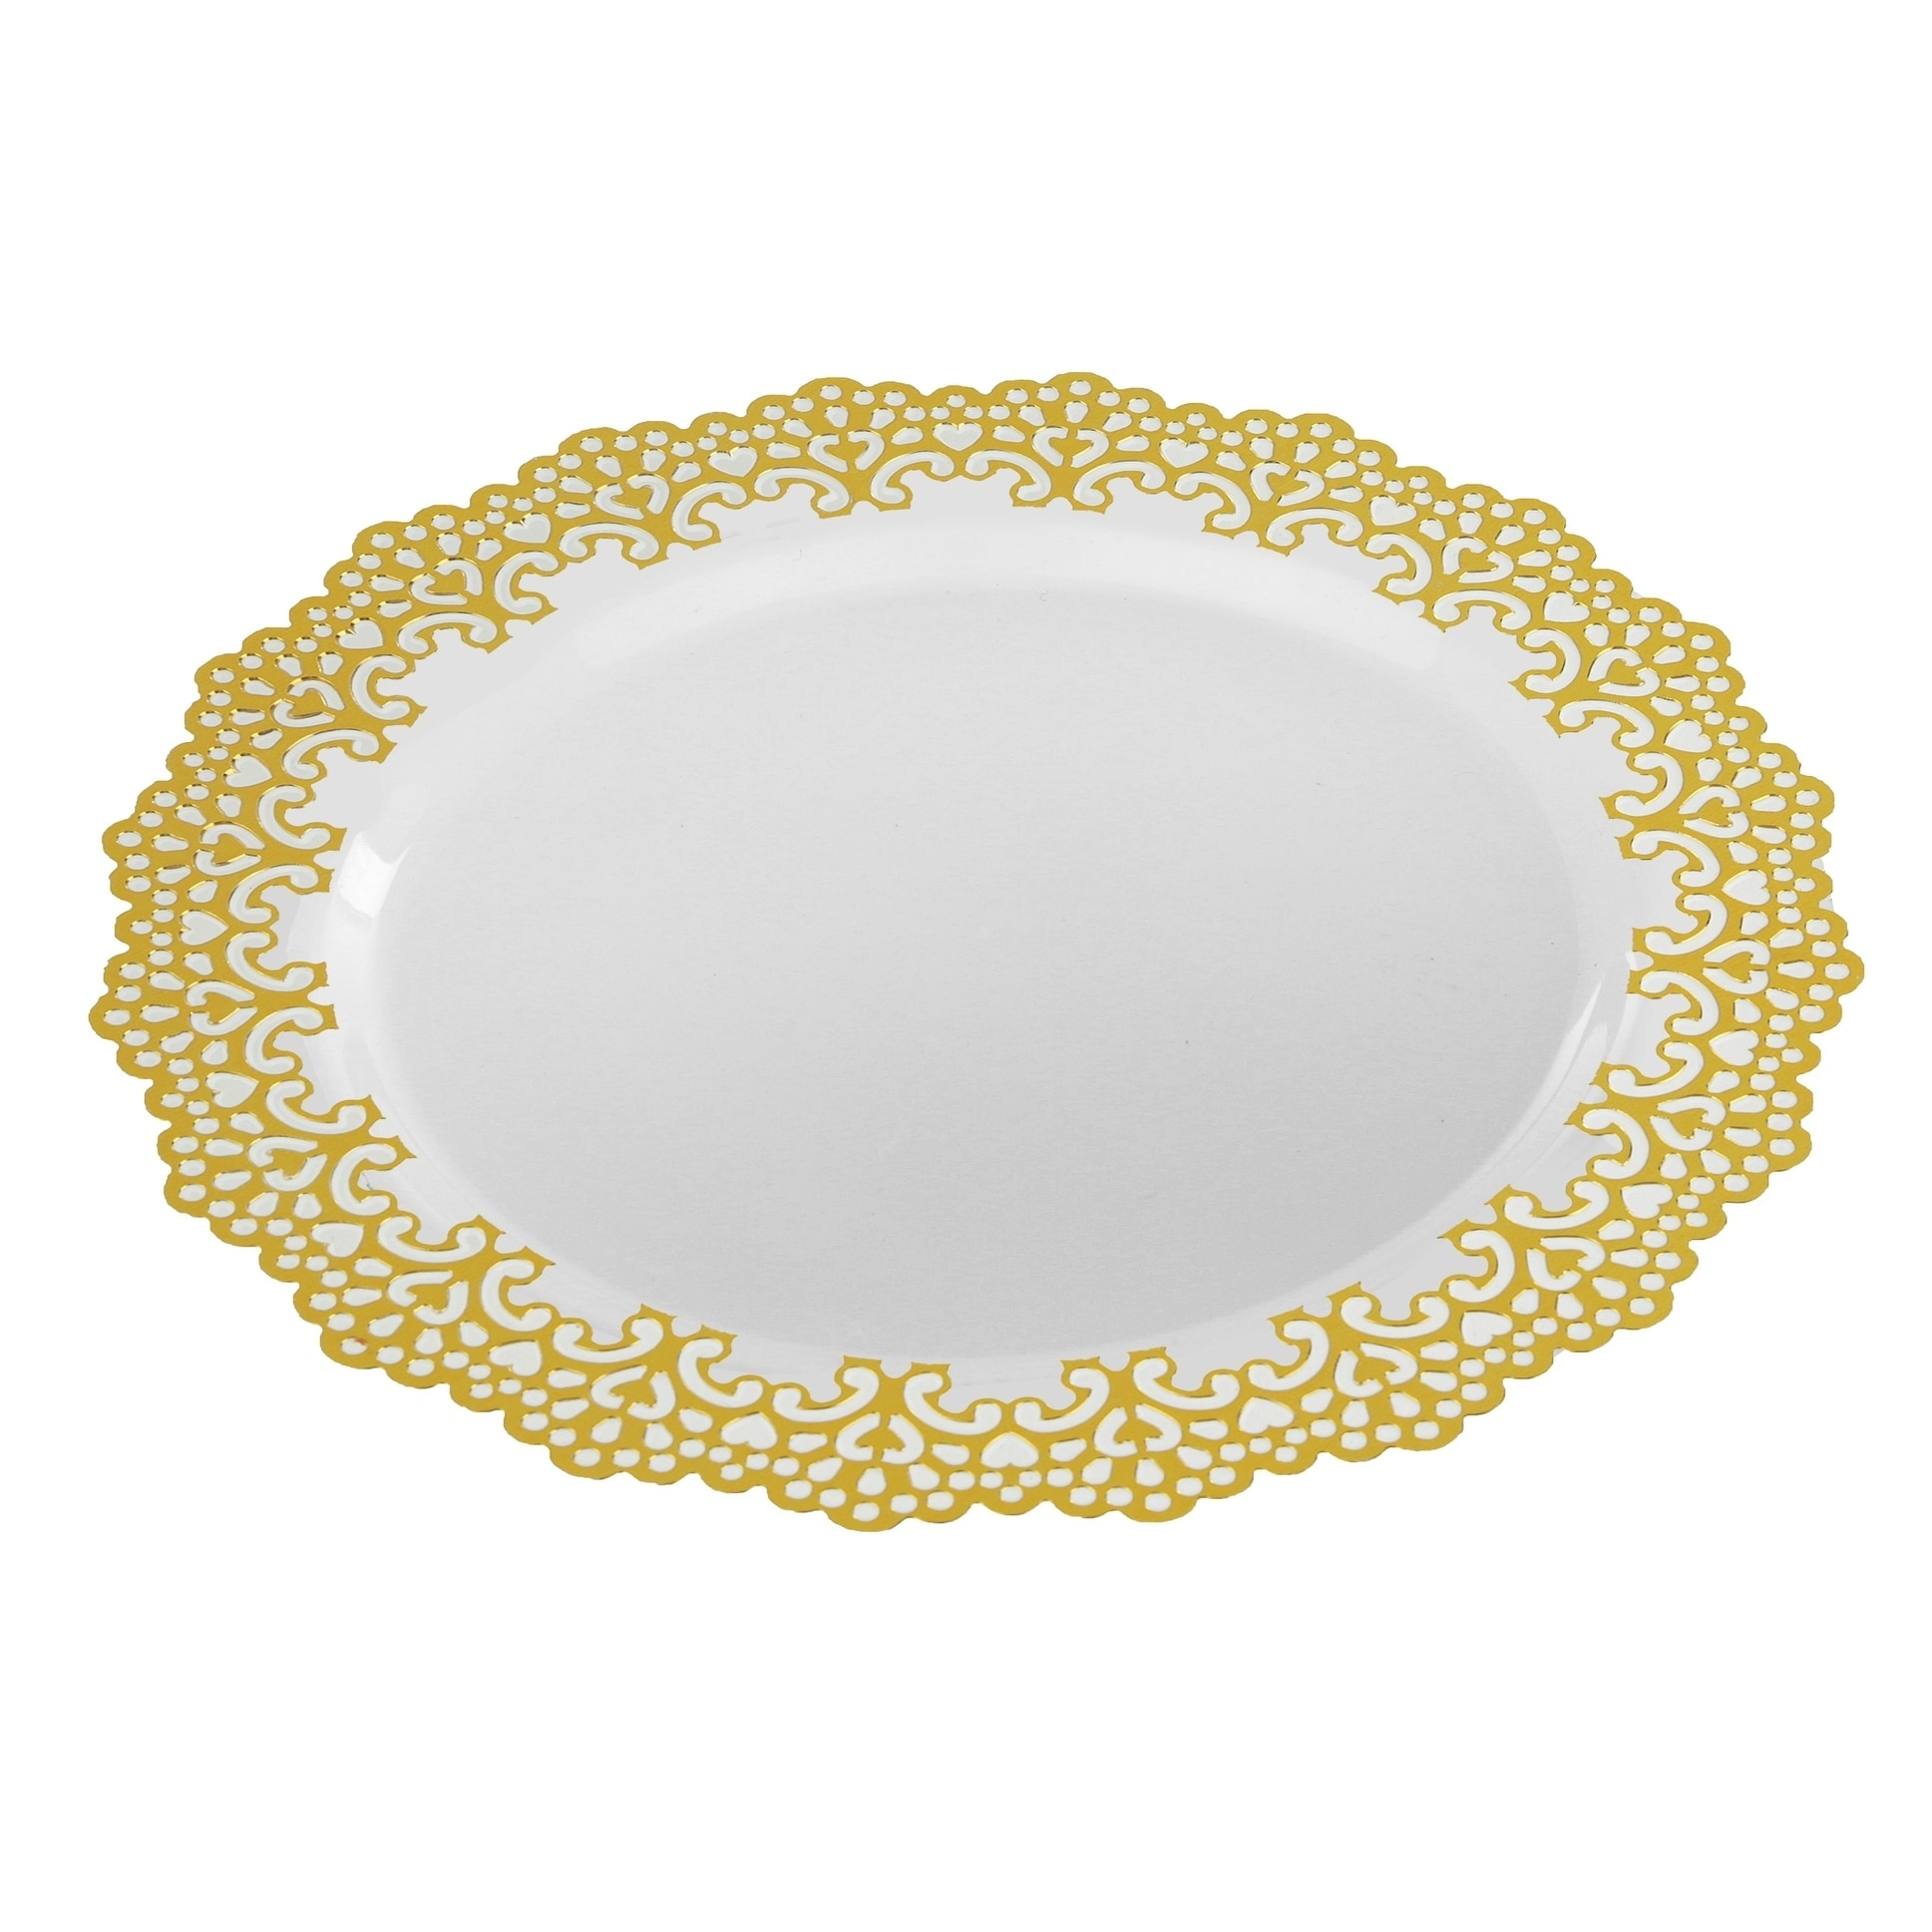 Decorative Plastic Dinnerware Gold Lace Rim 9  Round Buffet/Lunch Party Plates (48 Pack) - Free Shipping On Orders Over $45 - Overstock - 25817559  sc 1 st  Overstock & Decorative Plastic Dinnerware Gold Lace Rim 9